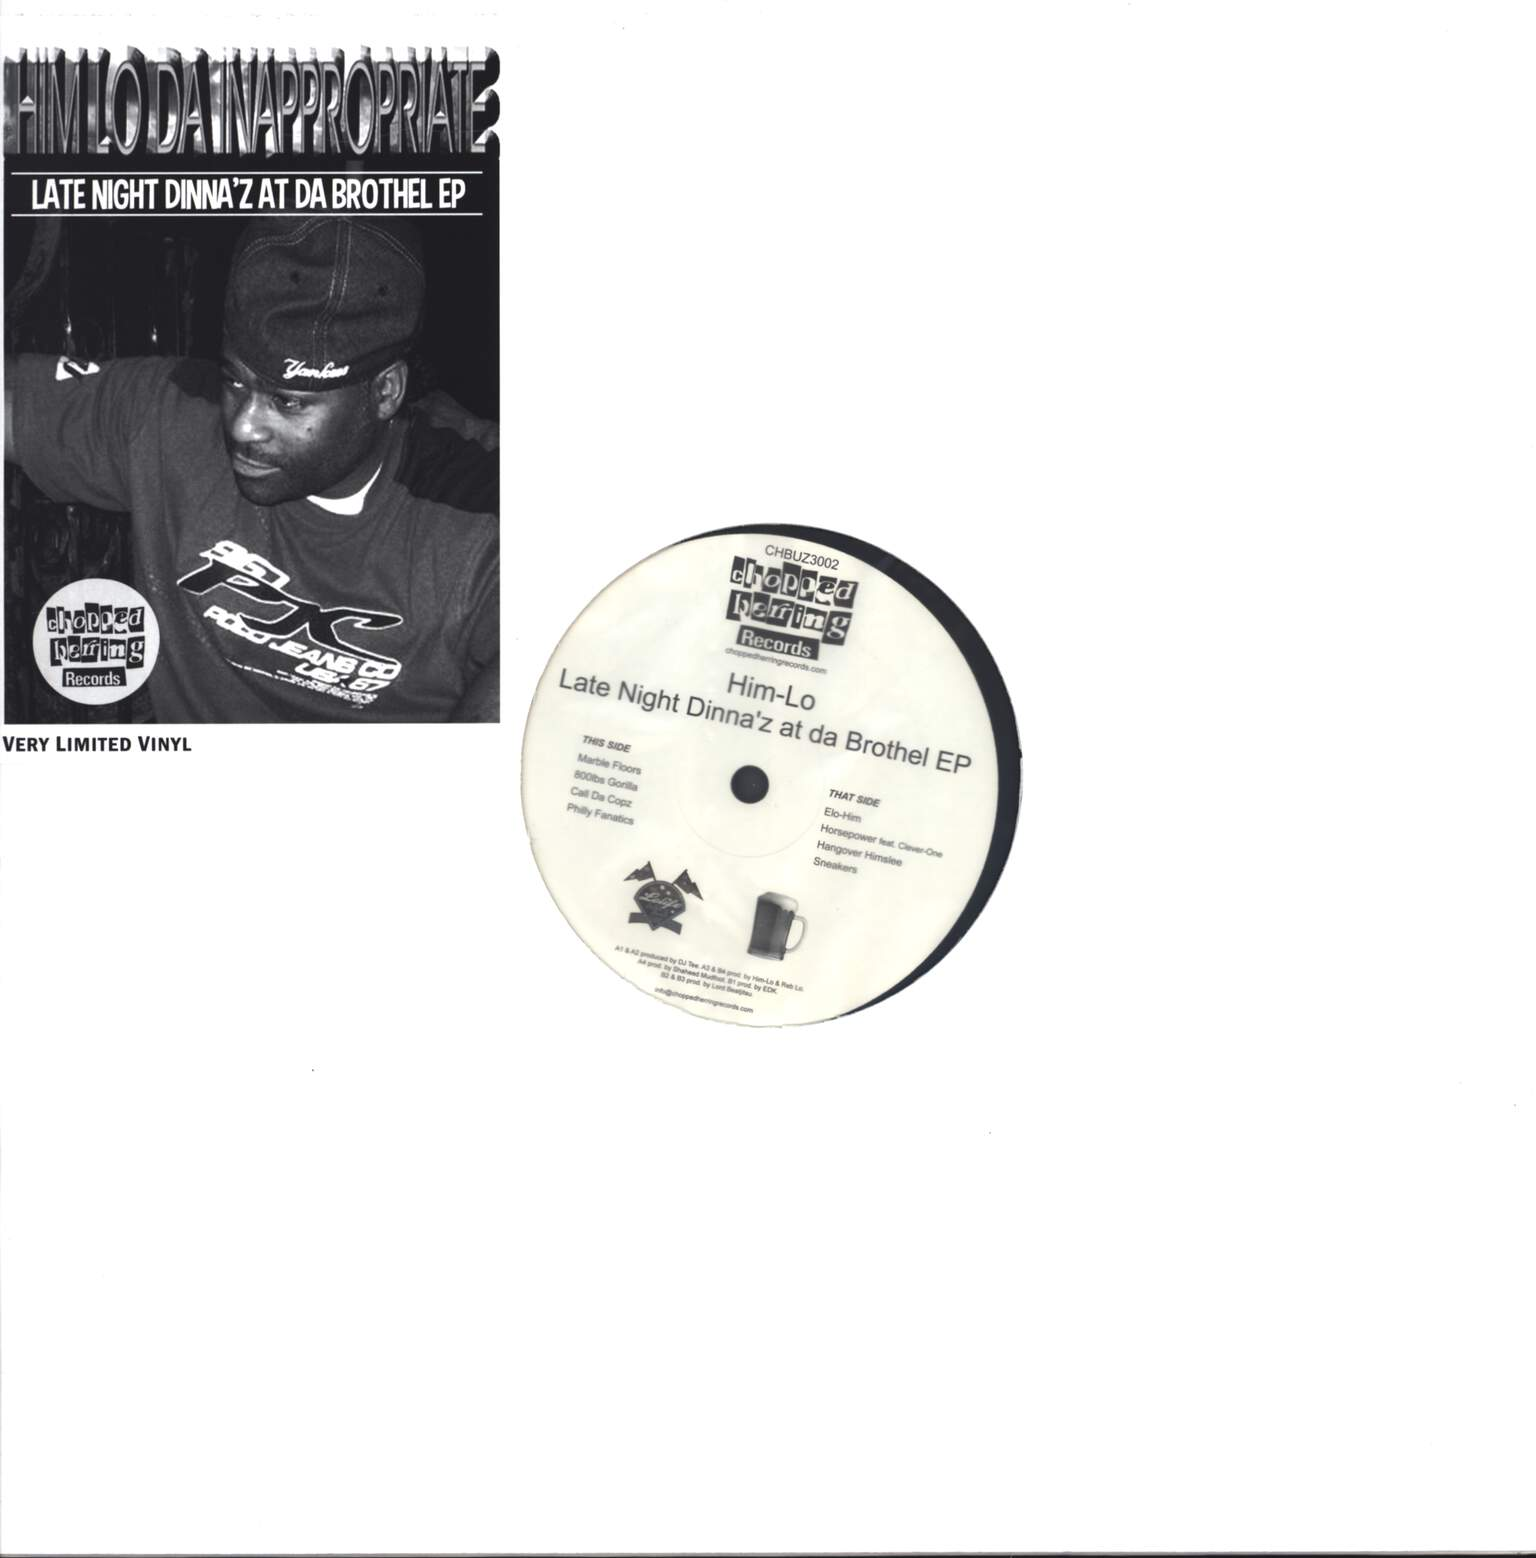 "Him-Lo: Late Night Dinna'z At Da Brothel EP, 12"" Maxi Single (Vinyl)"